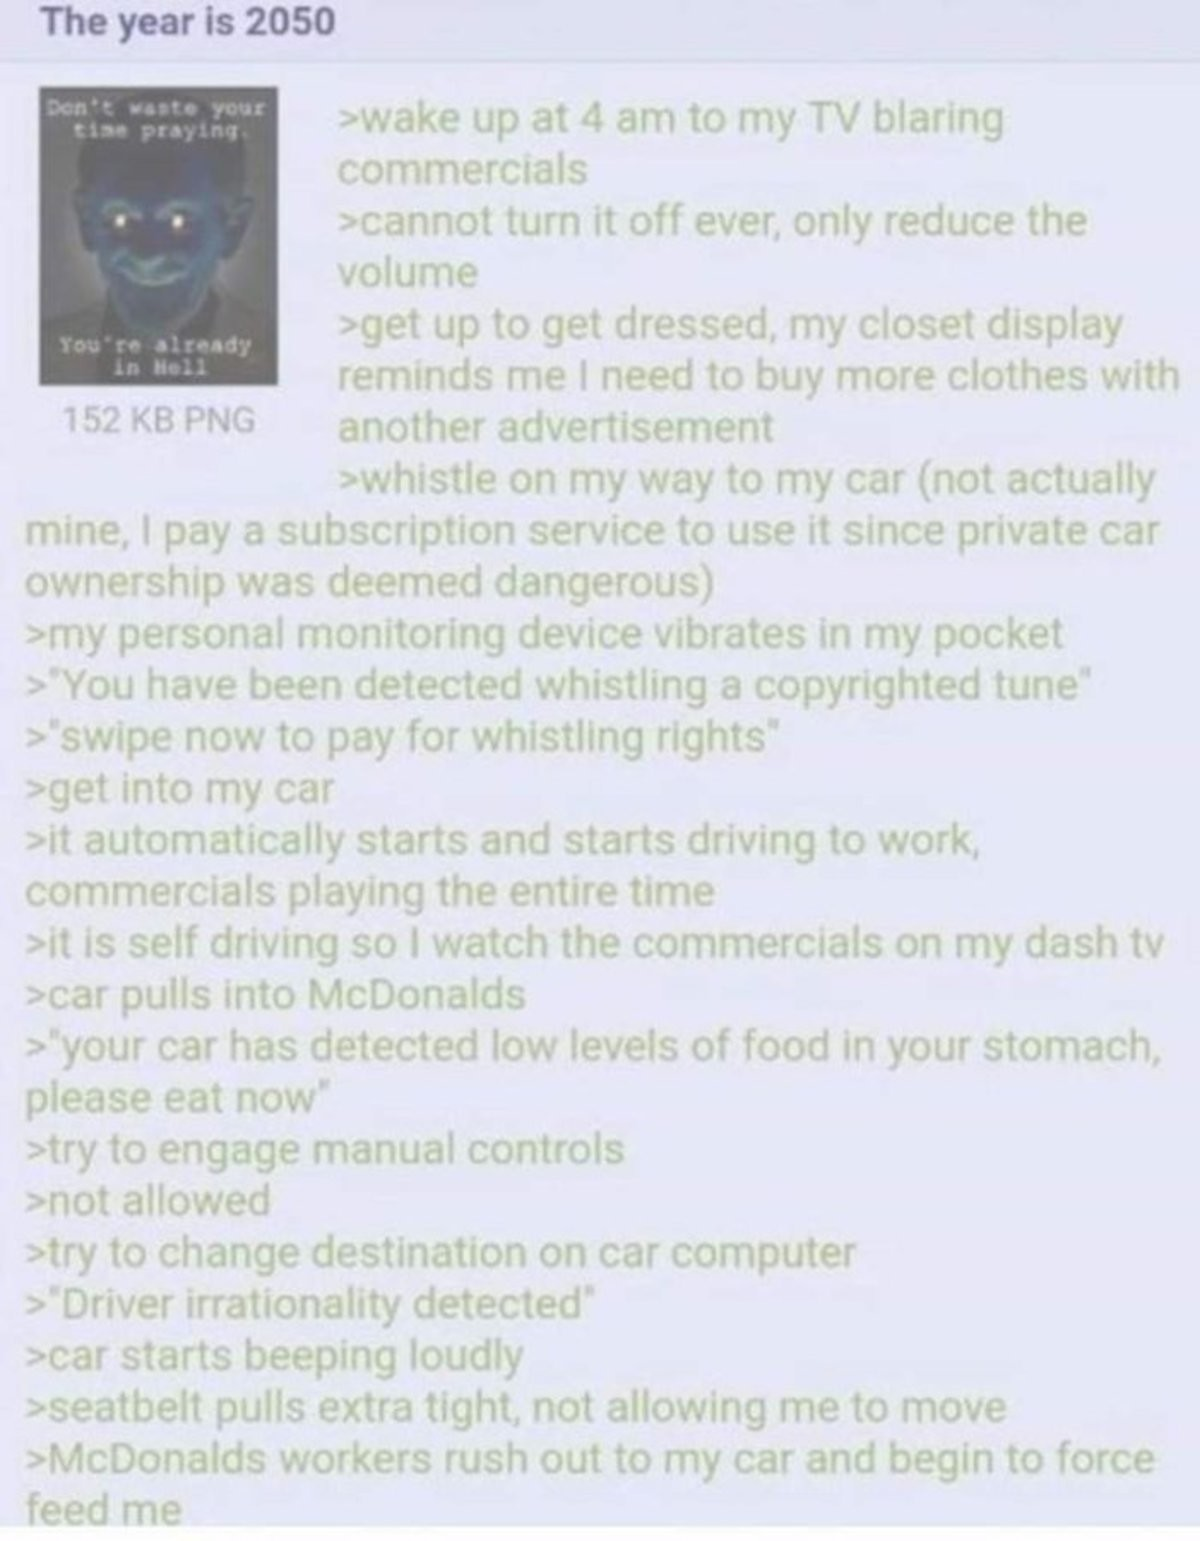 Anon in 2050. .. the world where the reptile took over